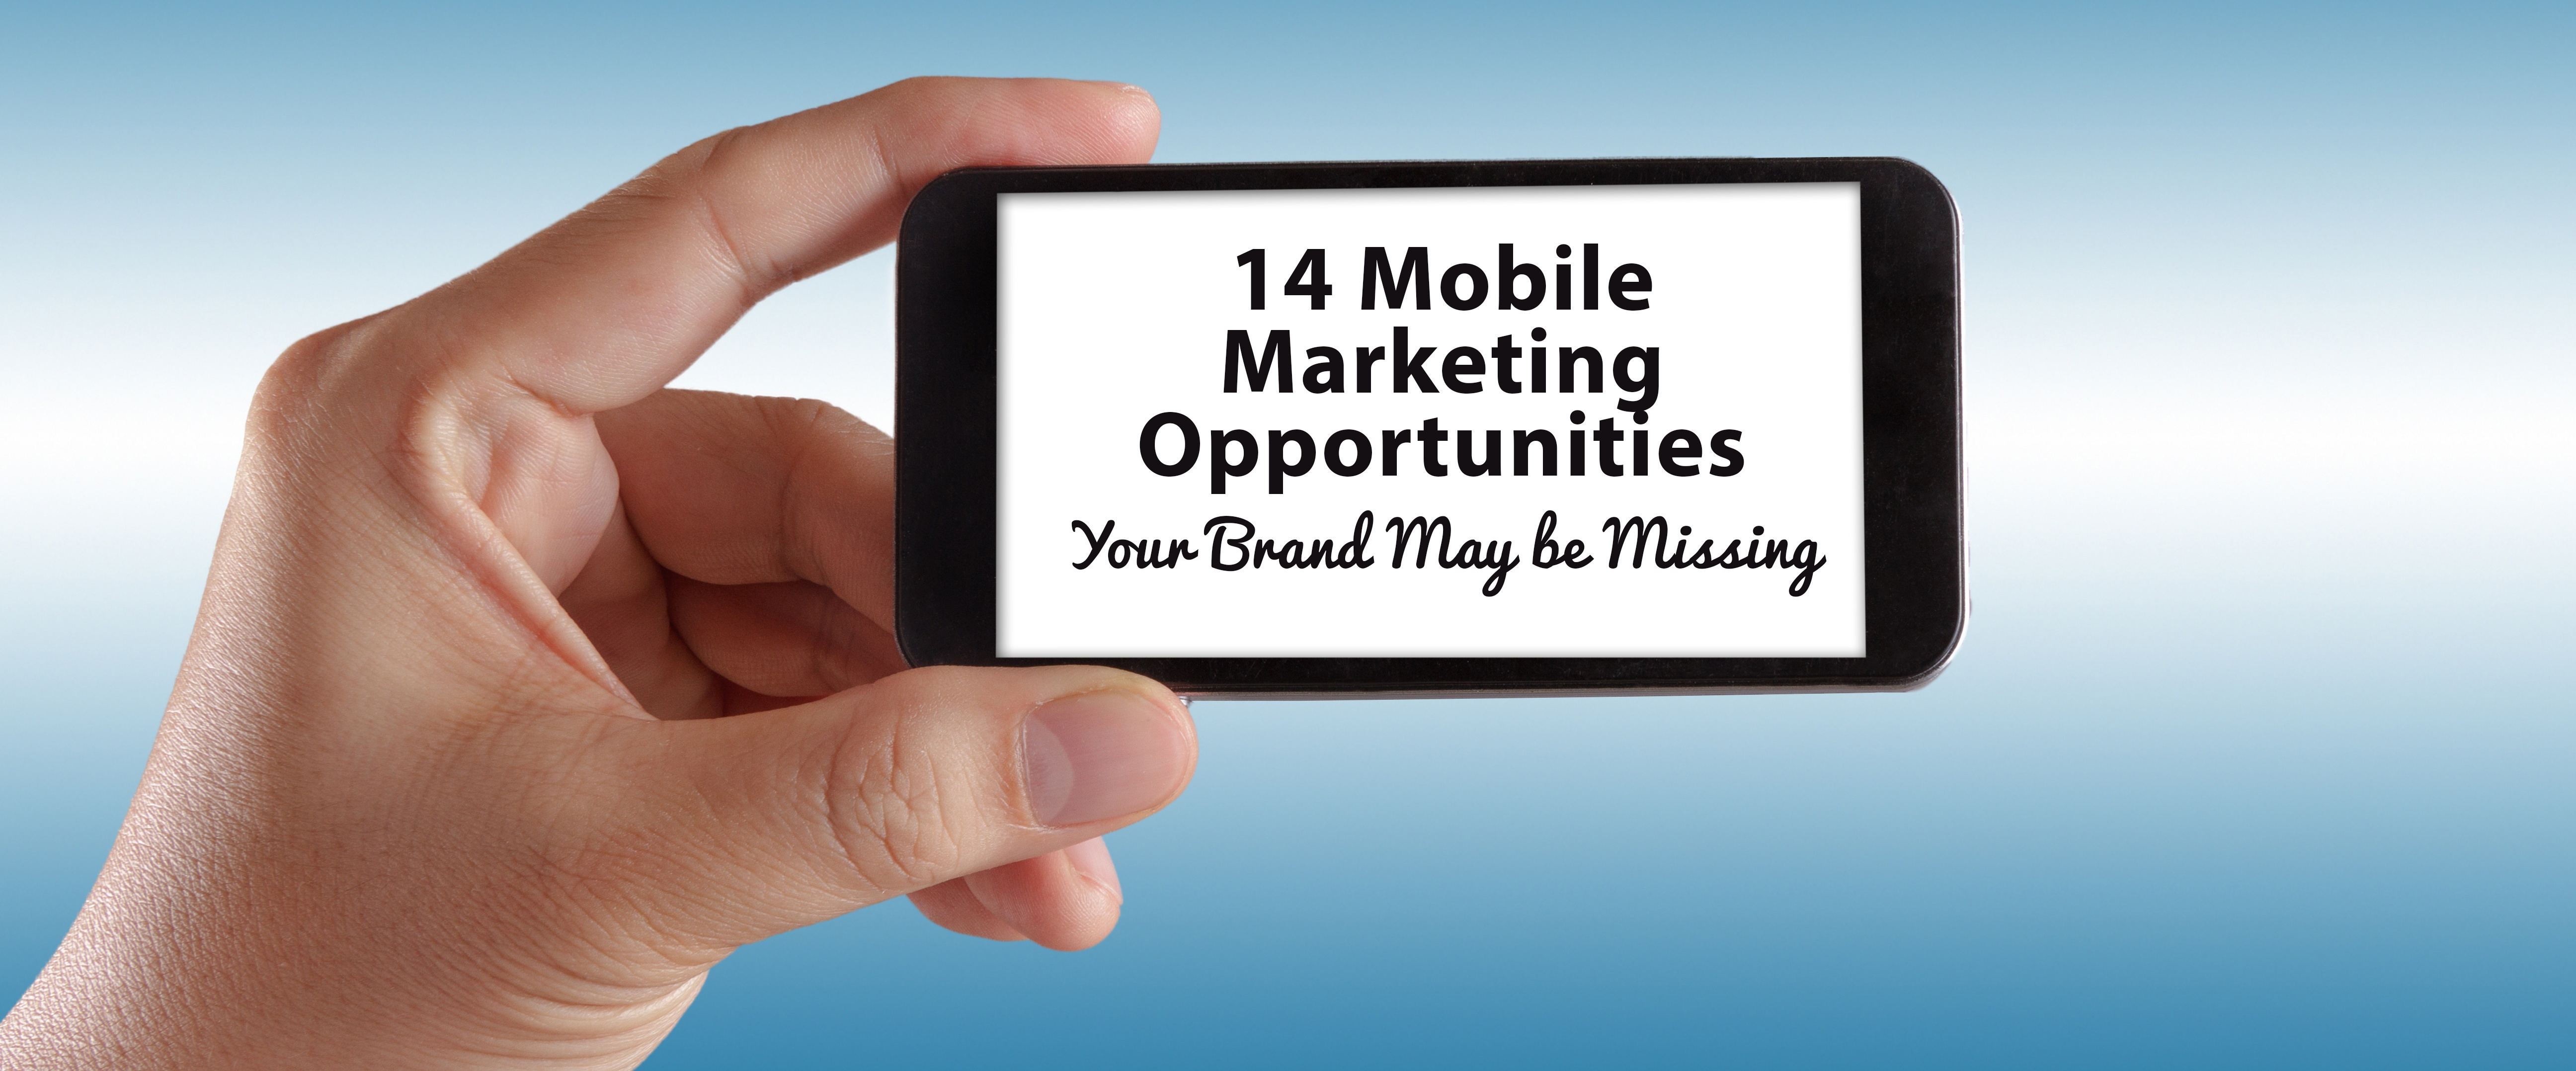 14 Mobile Marketing Opportunities Your Brand May be Missing.jpg